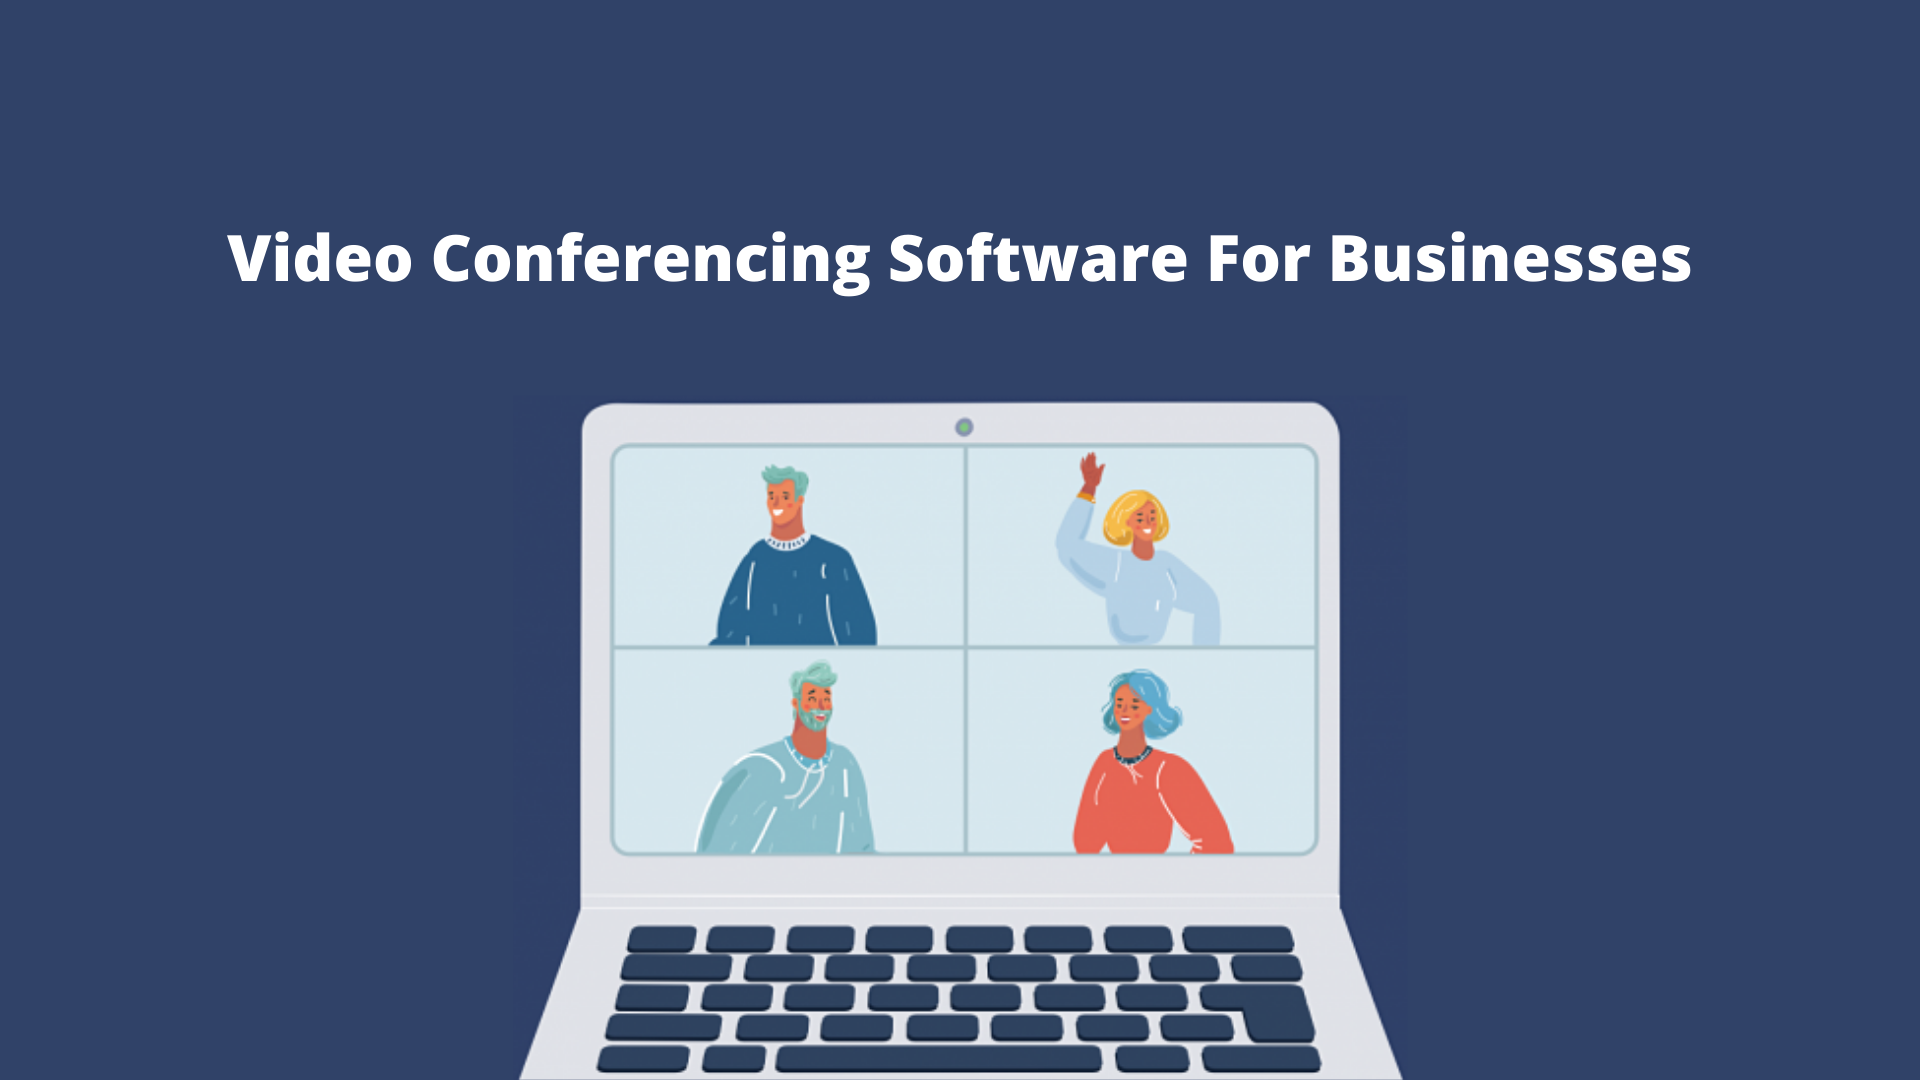 Video Conferencing Software For Businesses